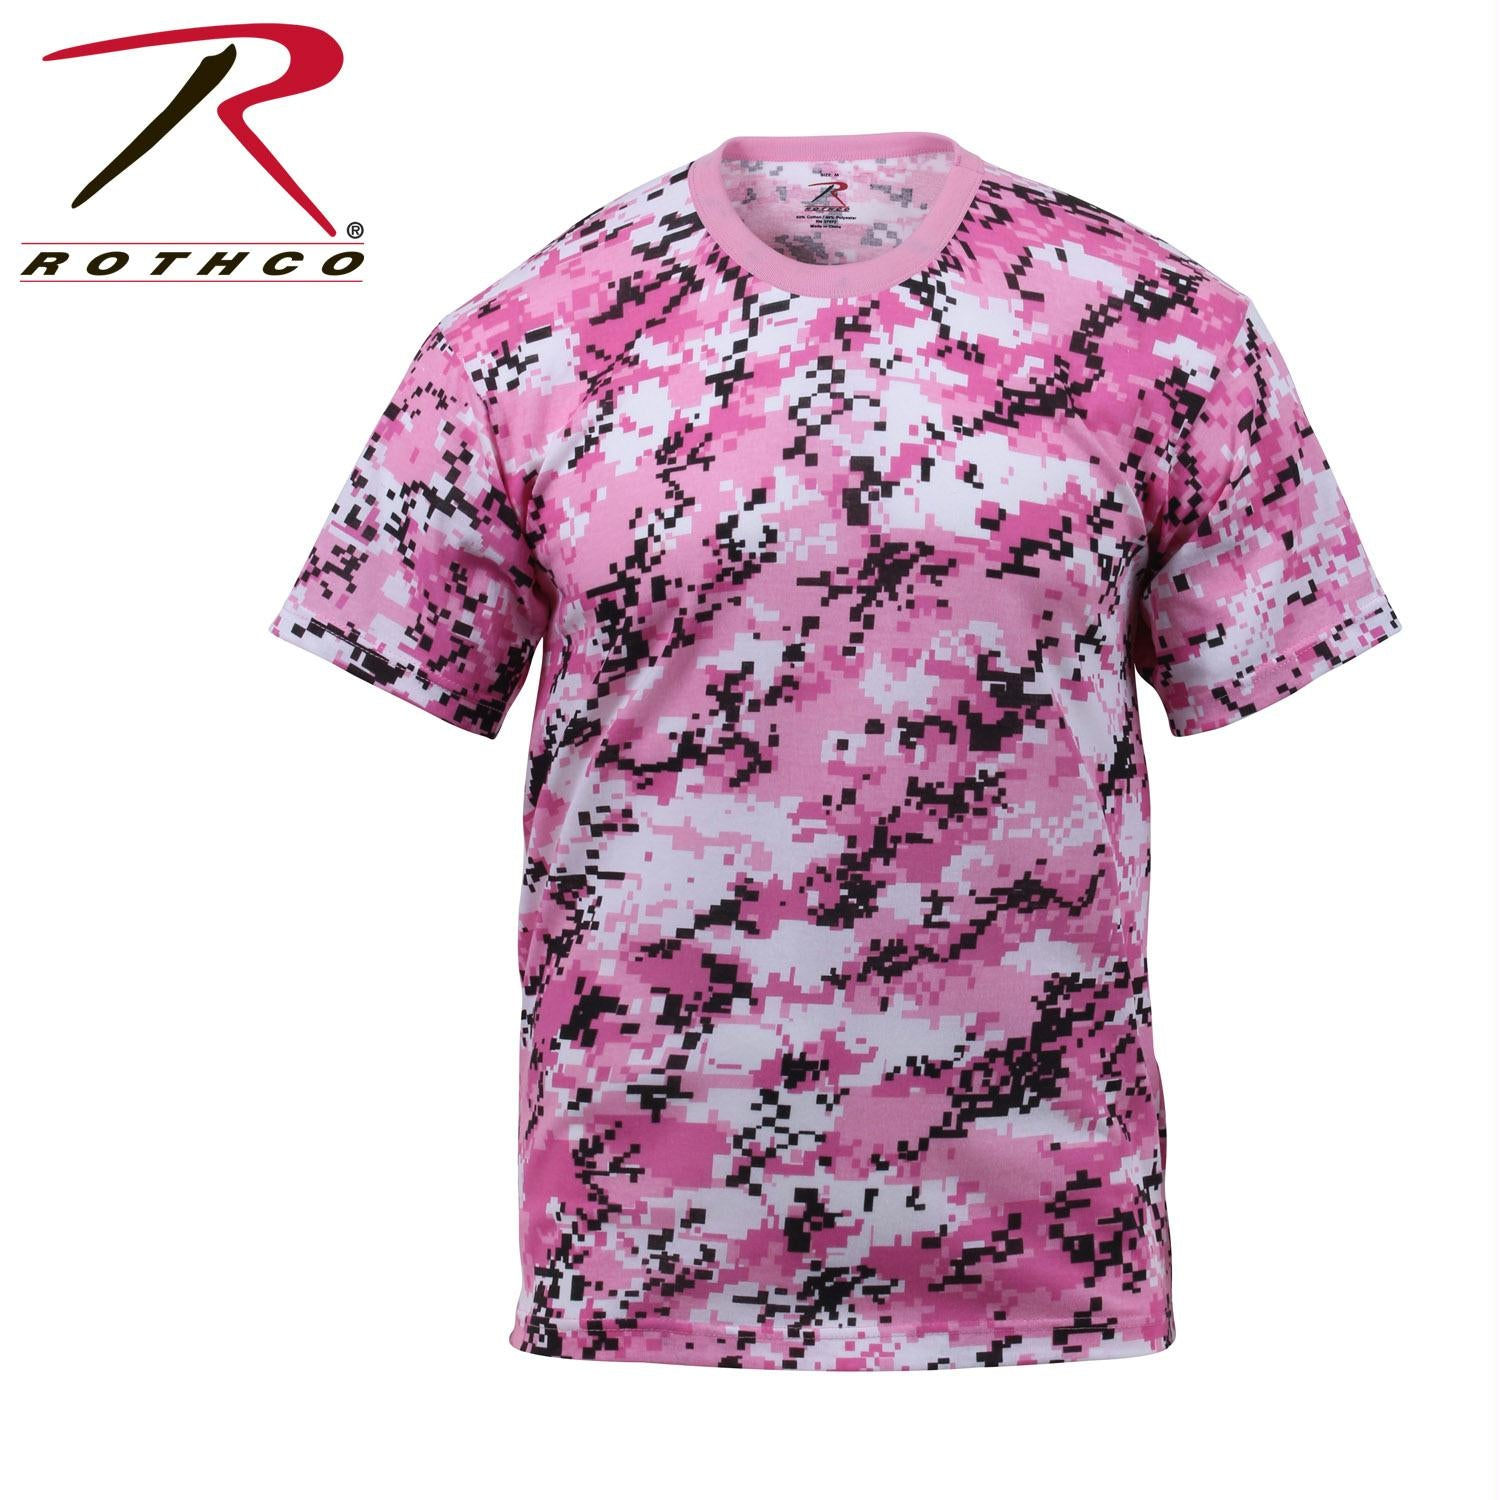 Rothco Digital Camo T-Shirt - Pink Digital Camo / L